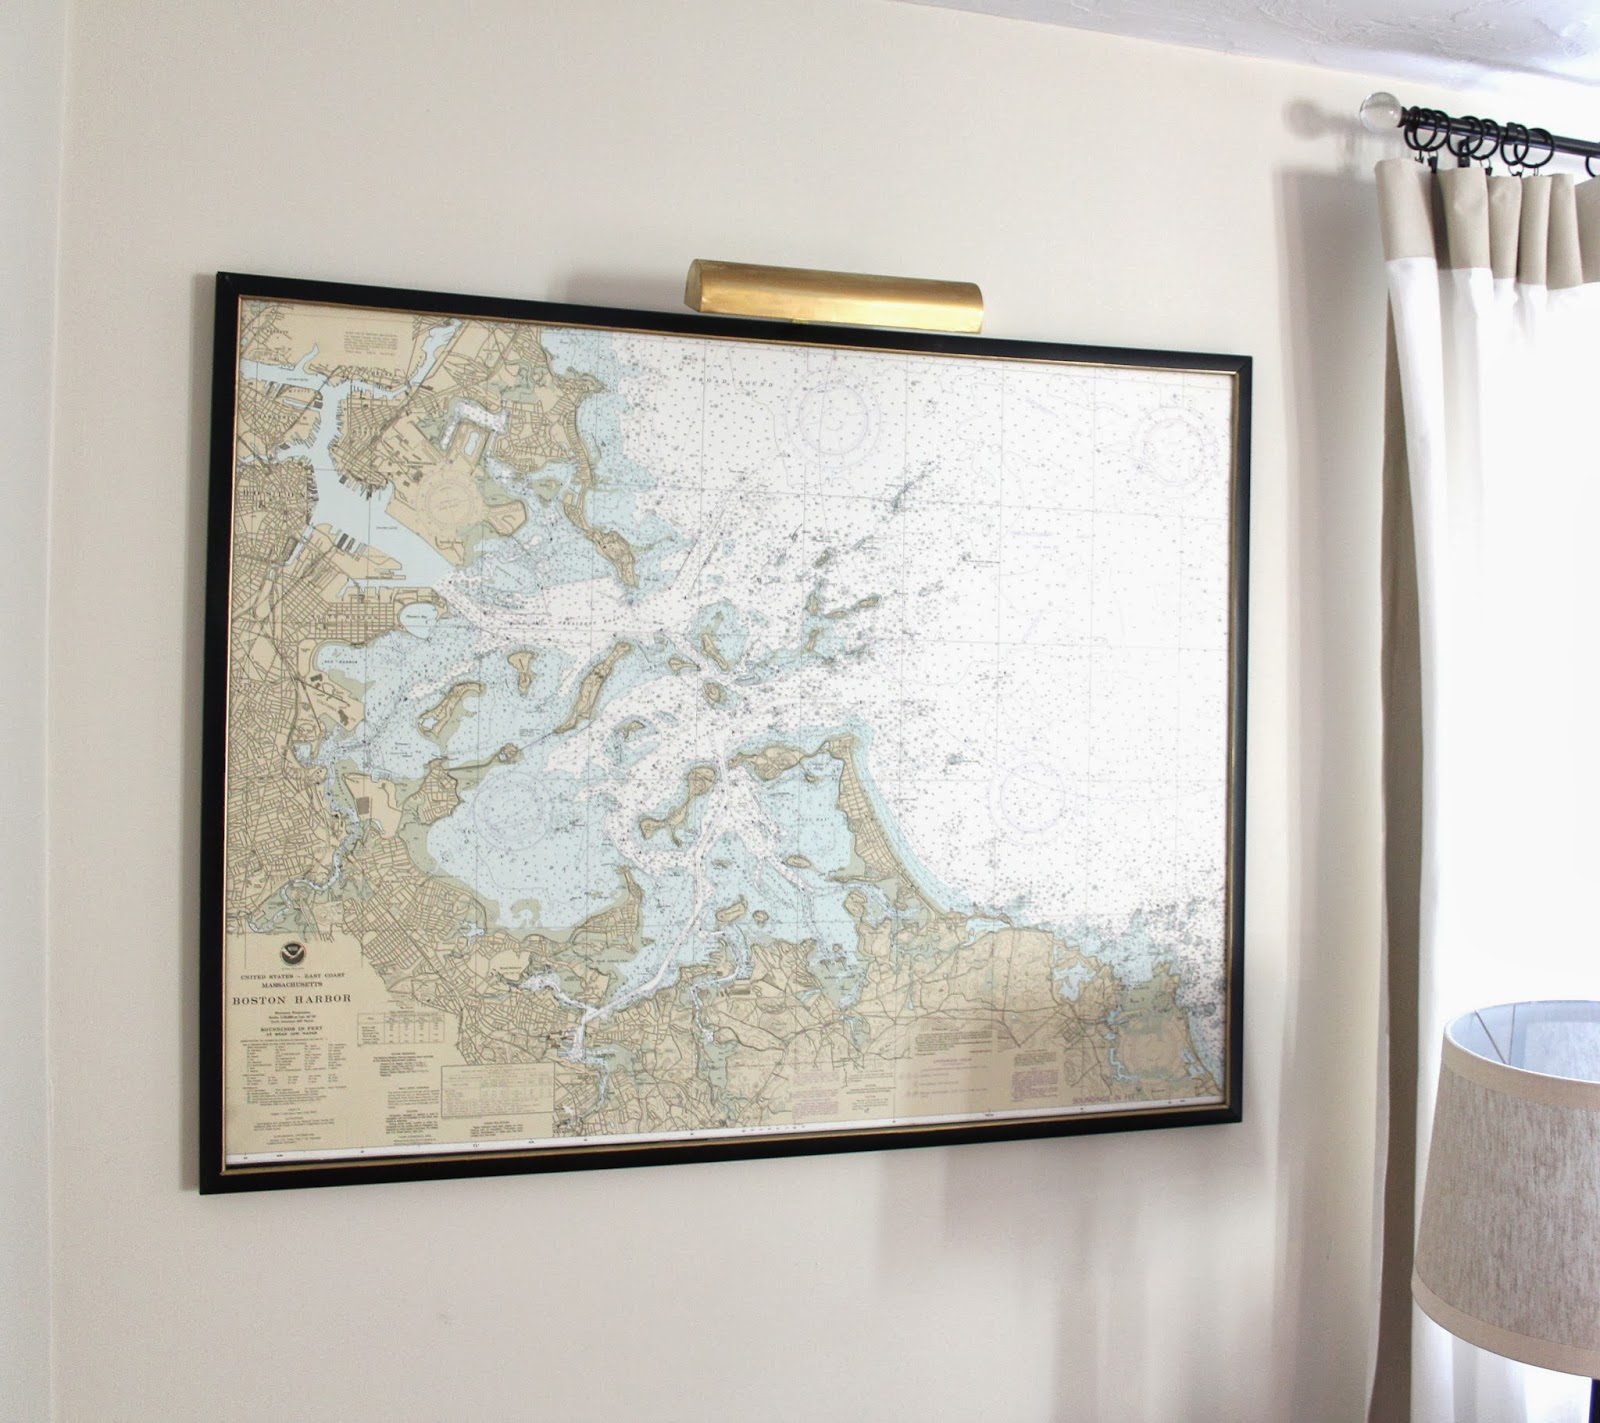 Orc how to mount and frame a large map shine your light solutioingenieria Choice Image